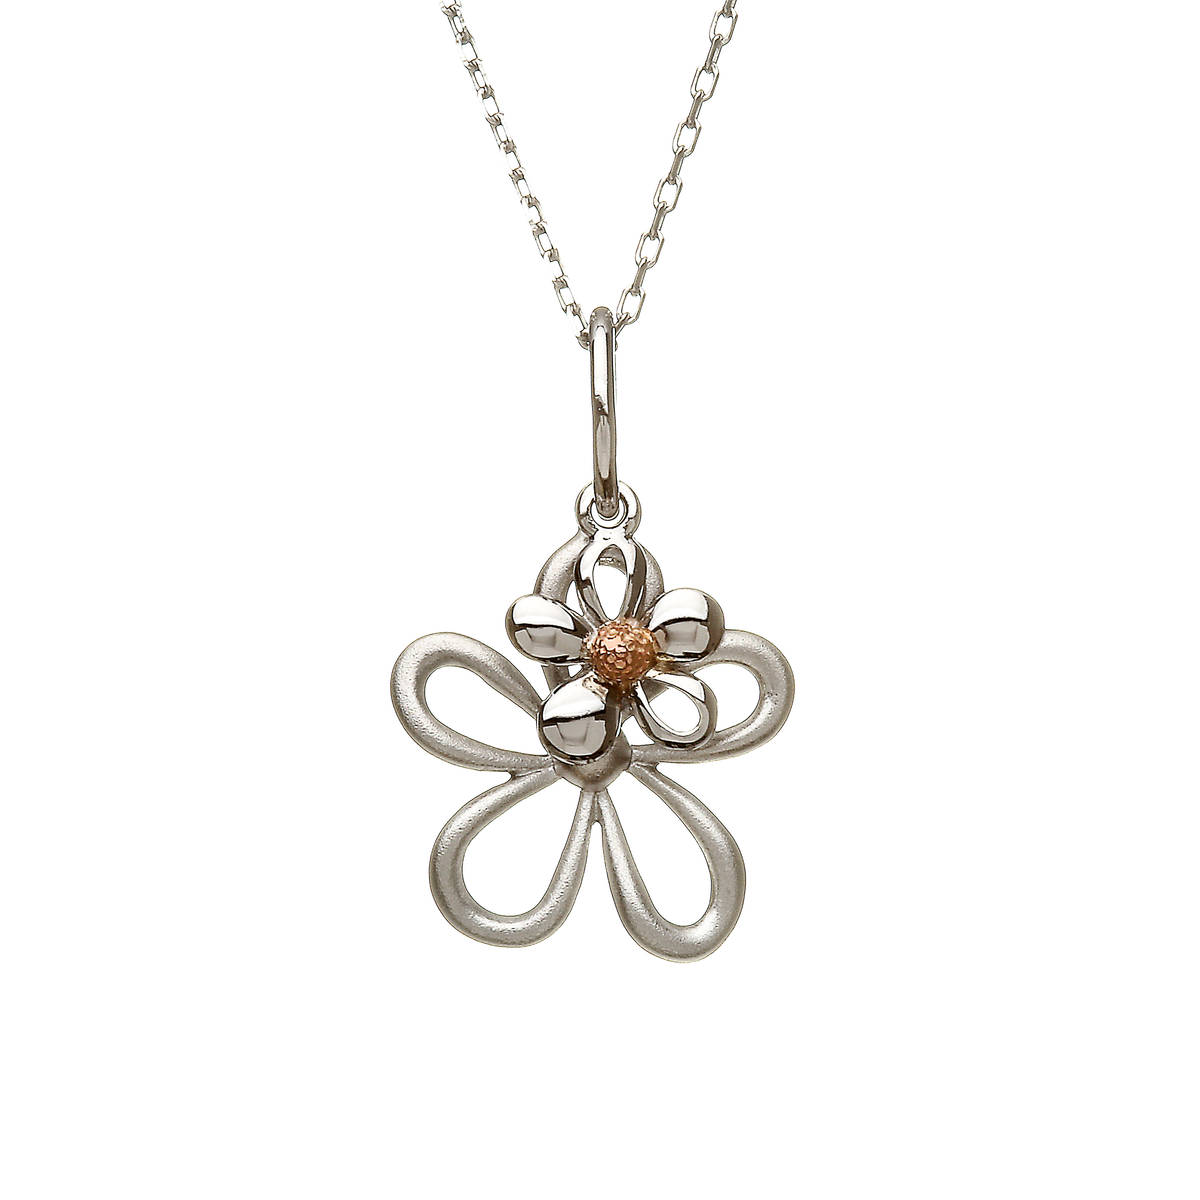 "silver and rare Irish rose gold small double petal pendant on 18"" chain."